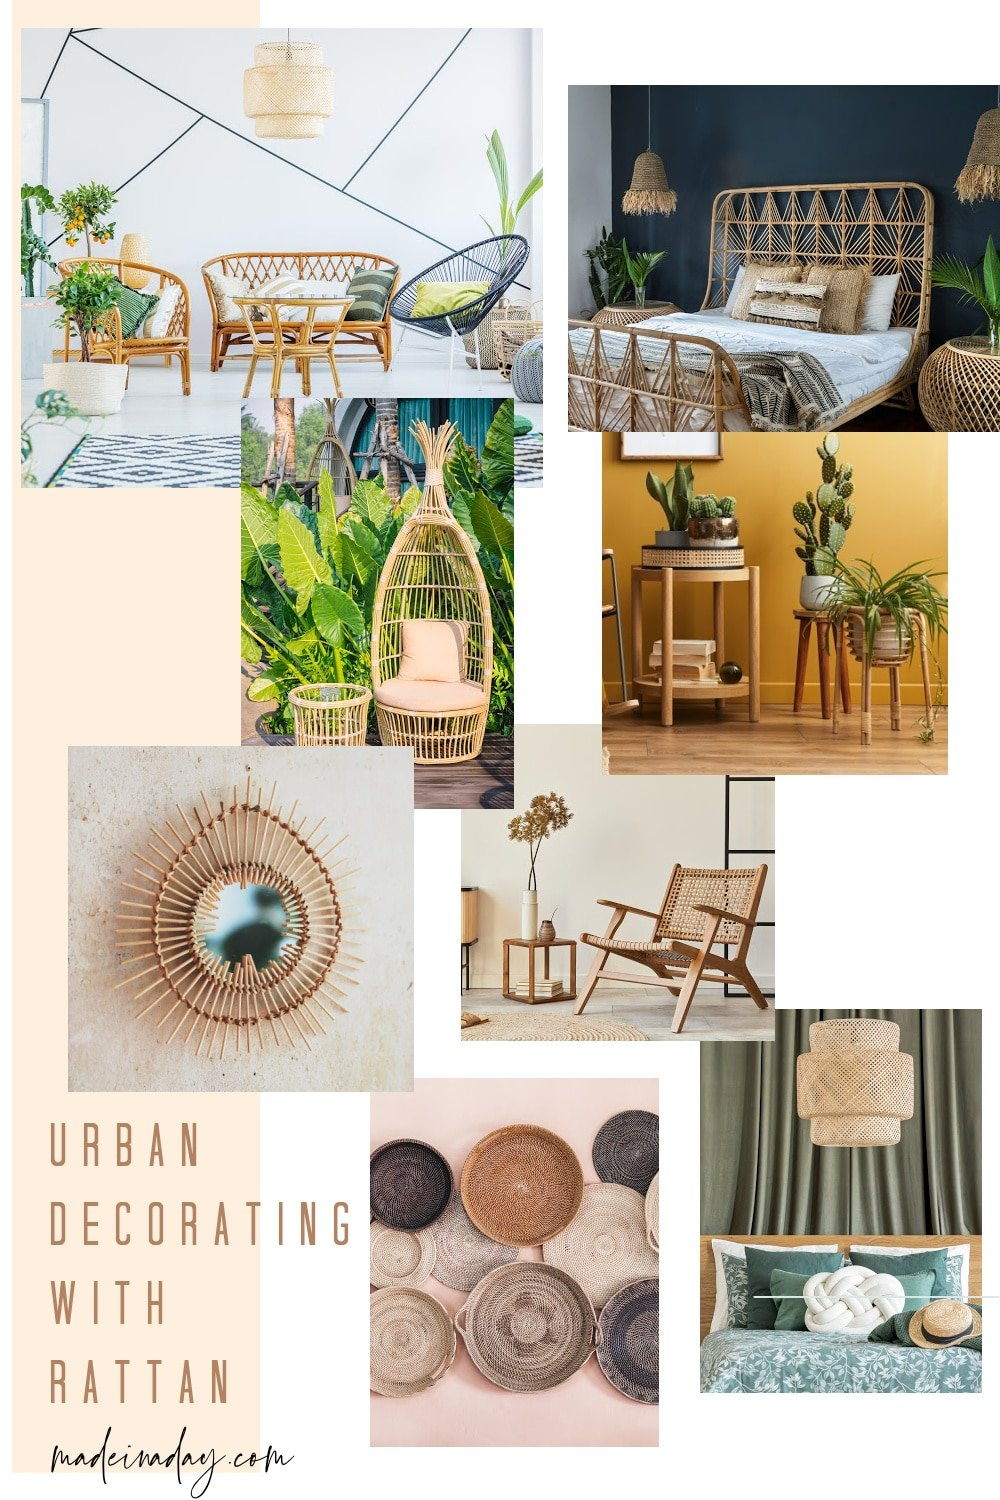 Fun Urban Decorating with Rattan Furniture and Decor